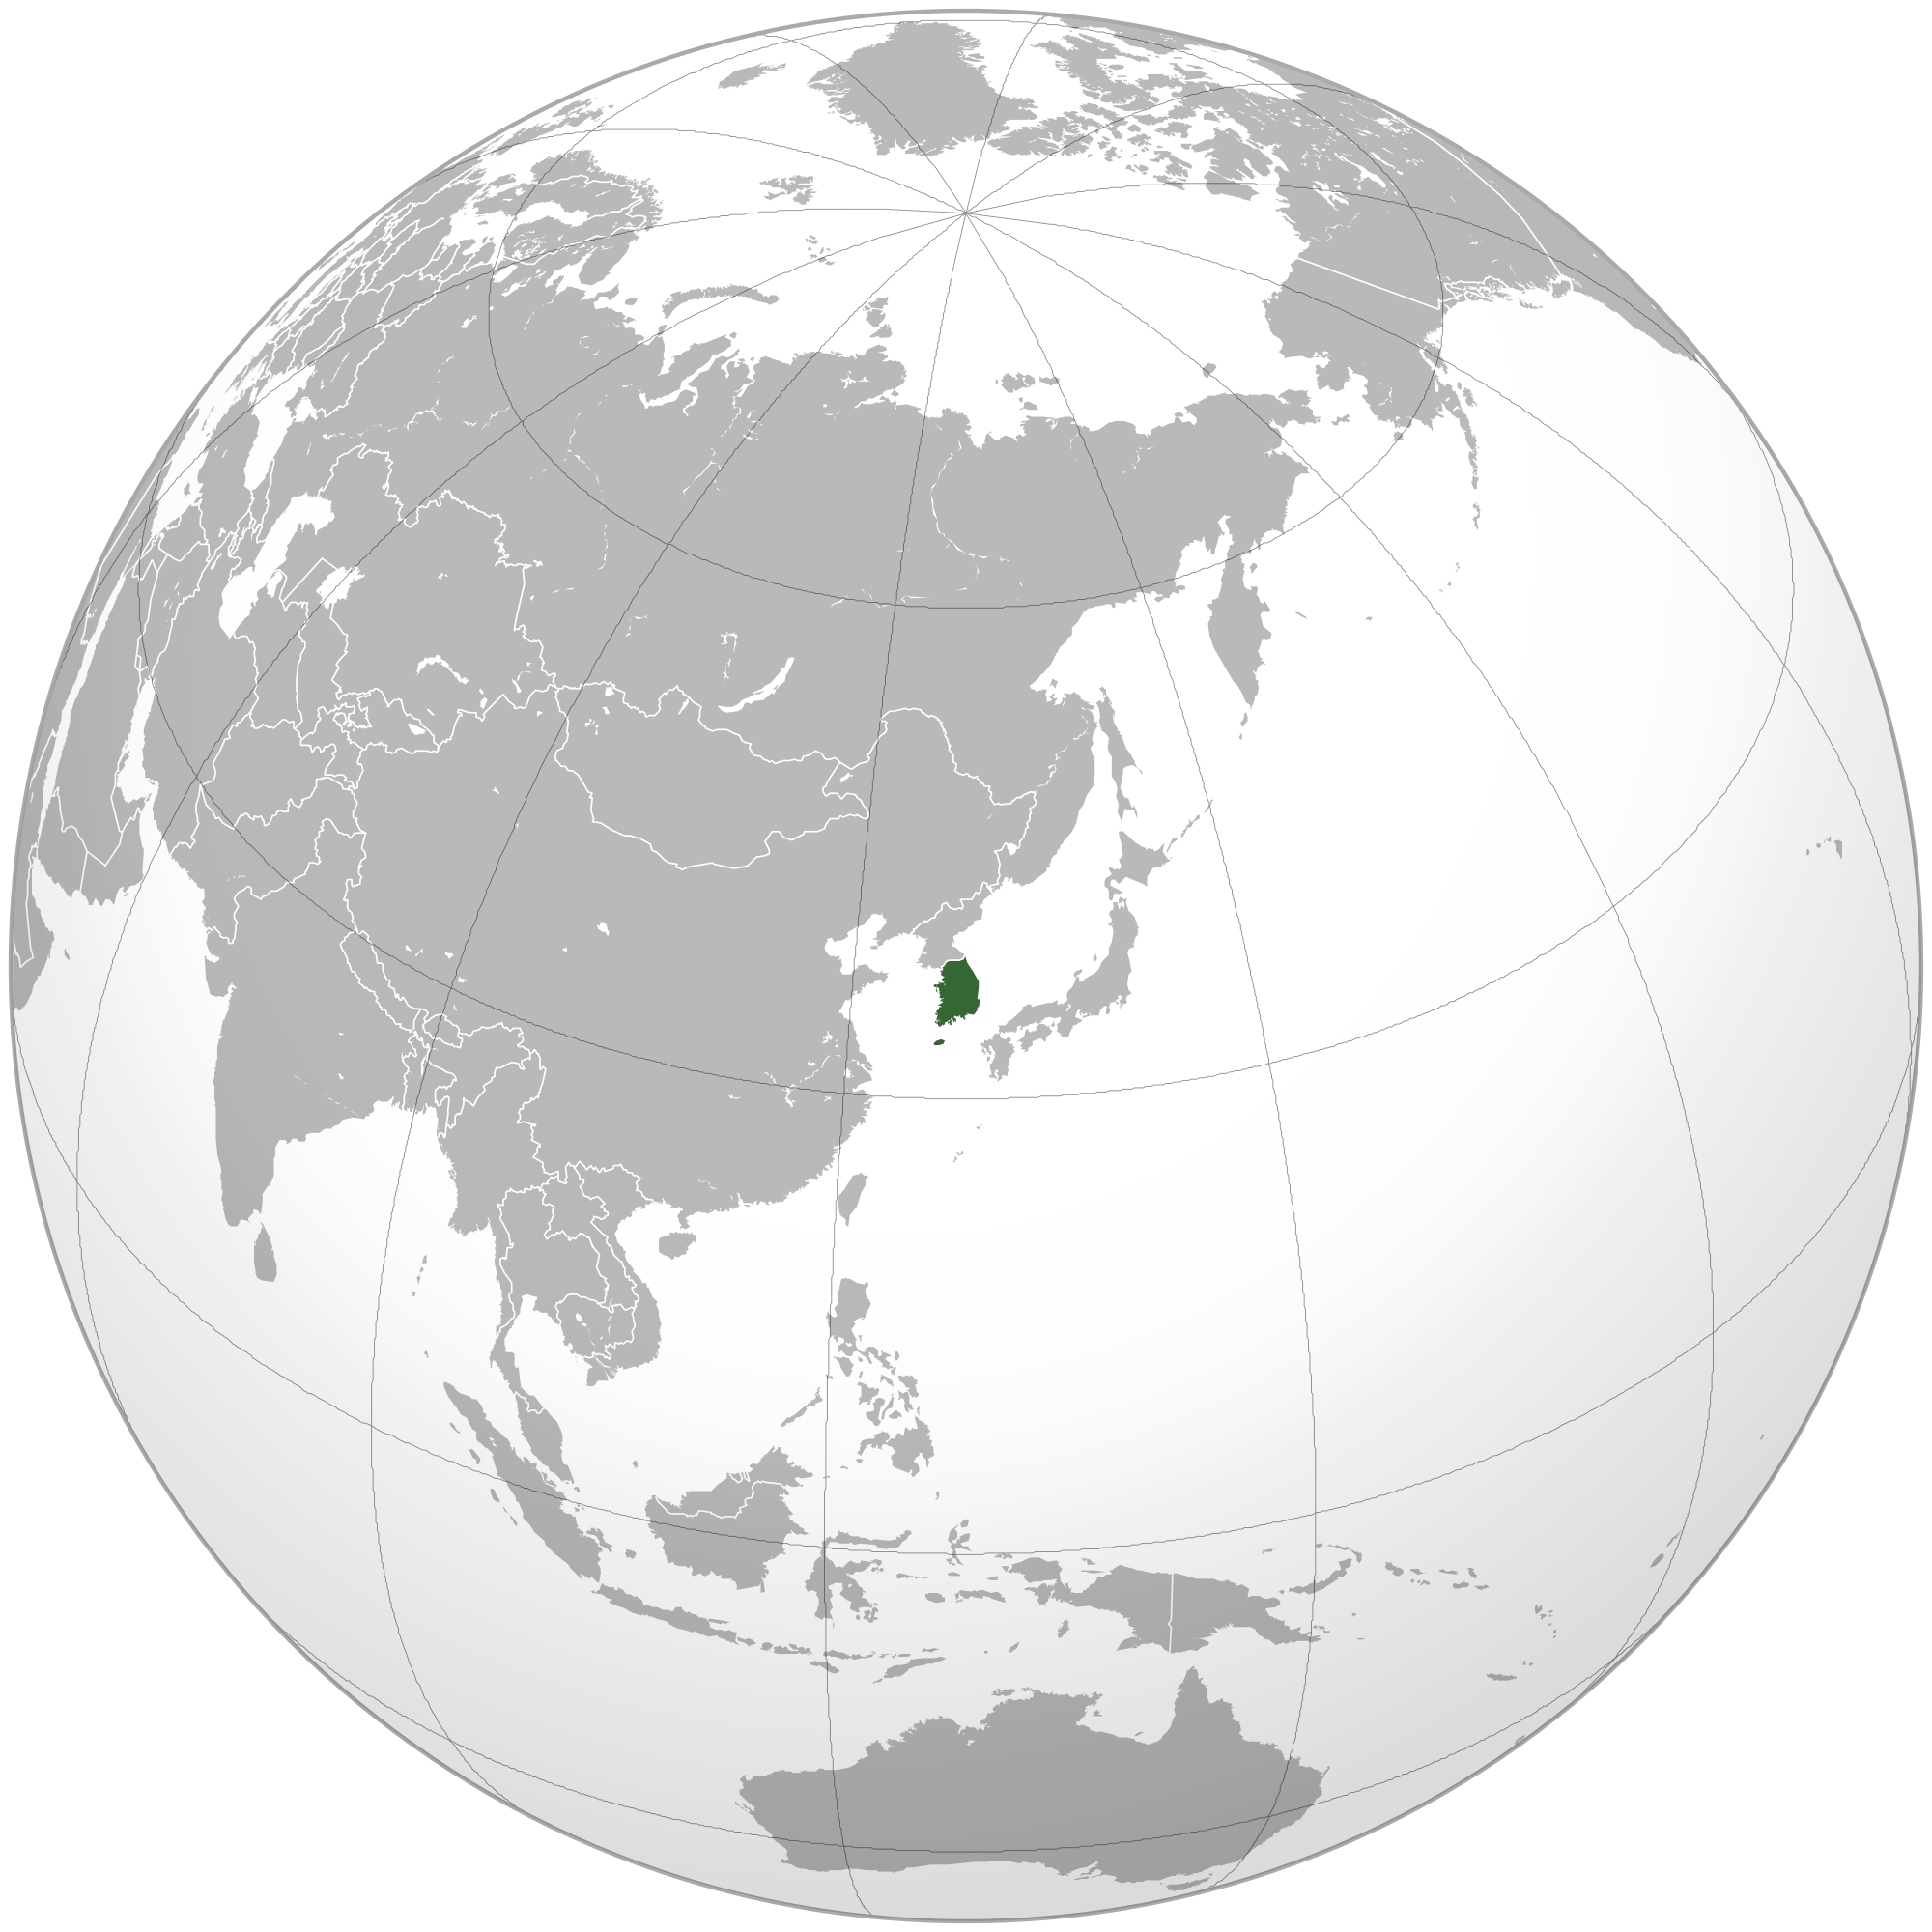 Location of the South Korea in the World Map